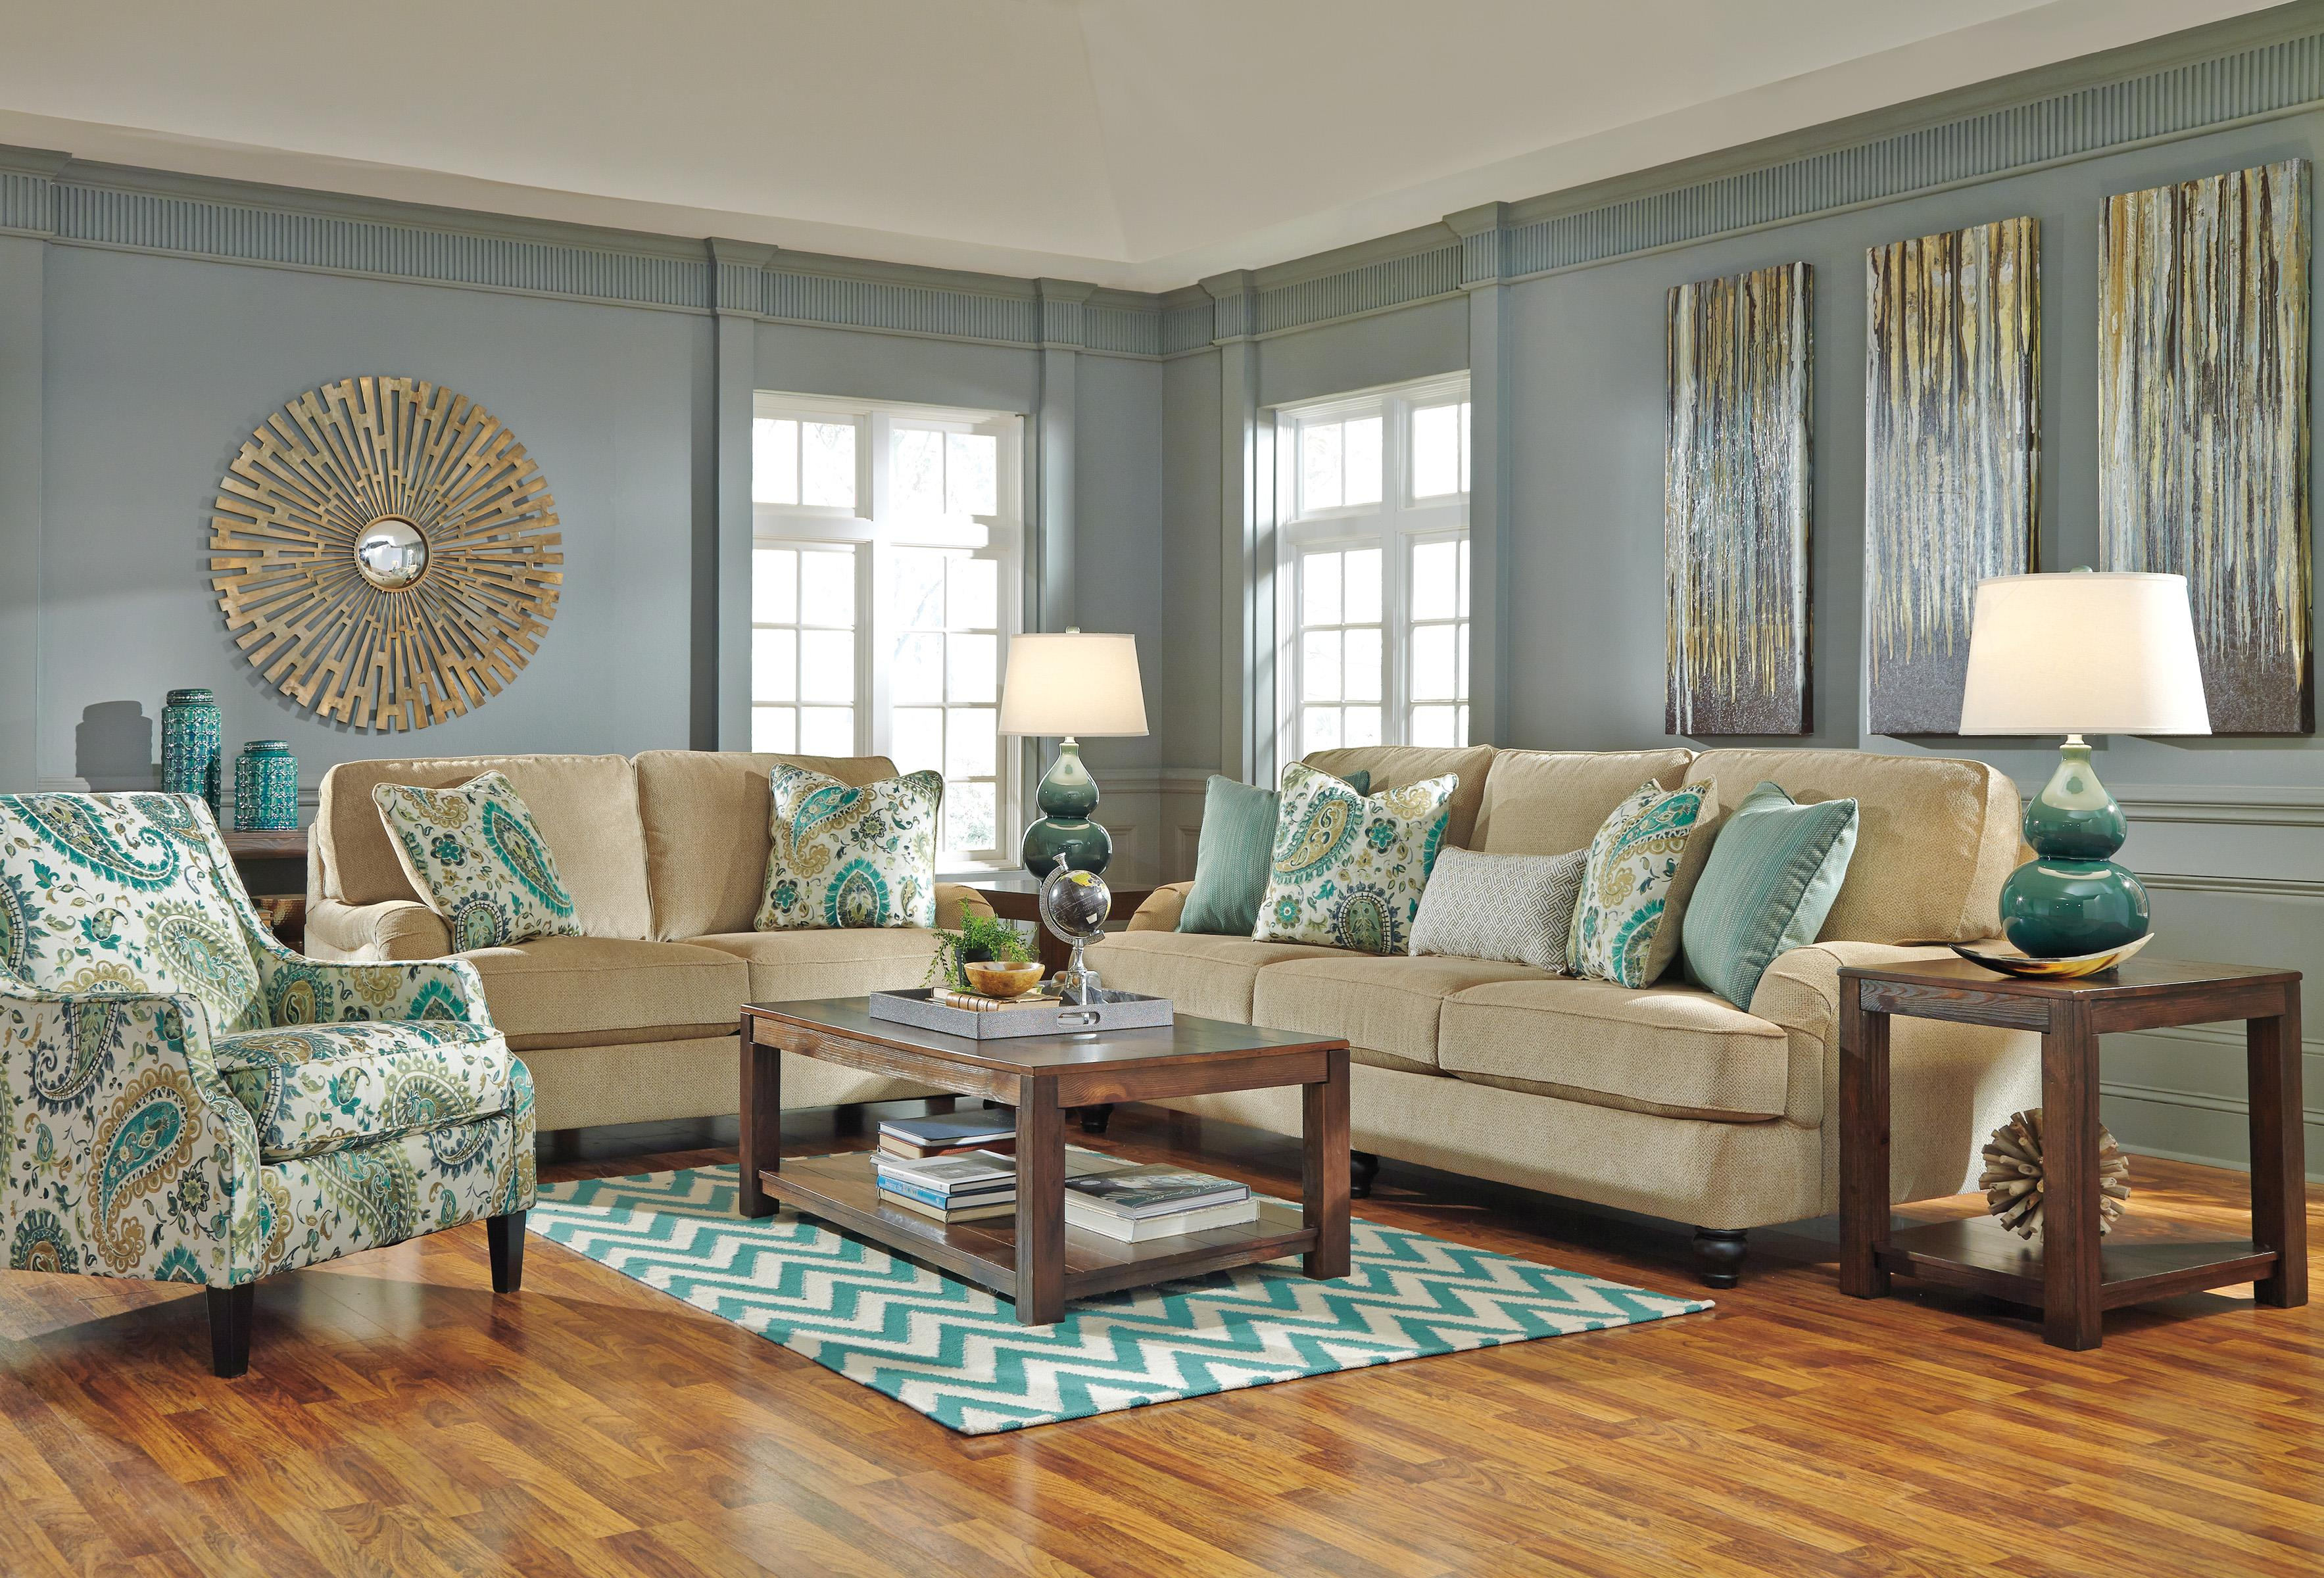 Benchcraft Lochian Stationary Living Room Group - Item Number: 58100 Living Room Group 3